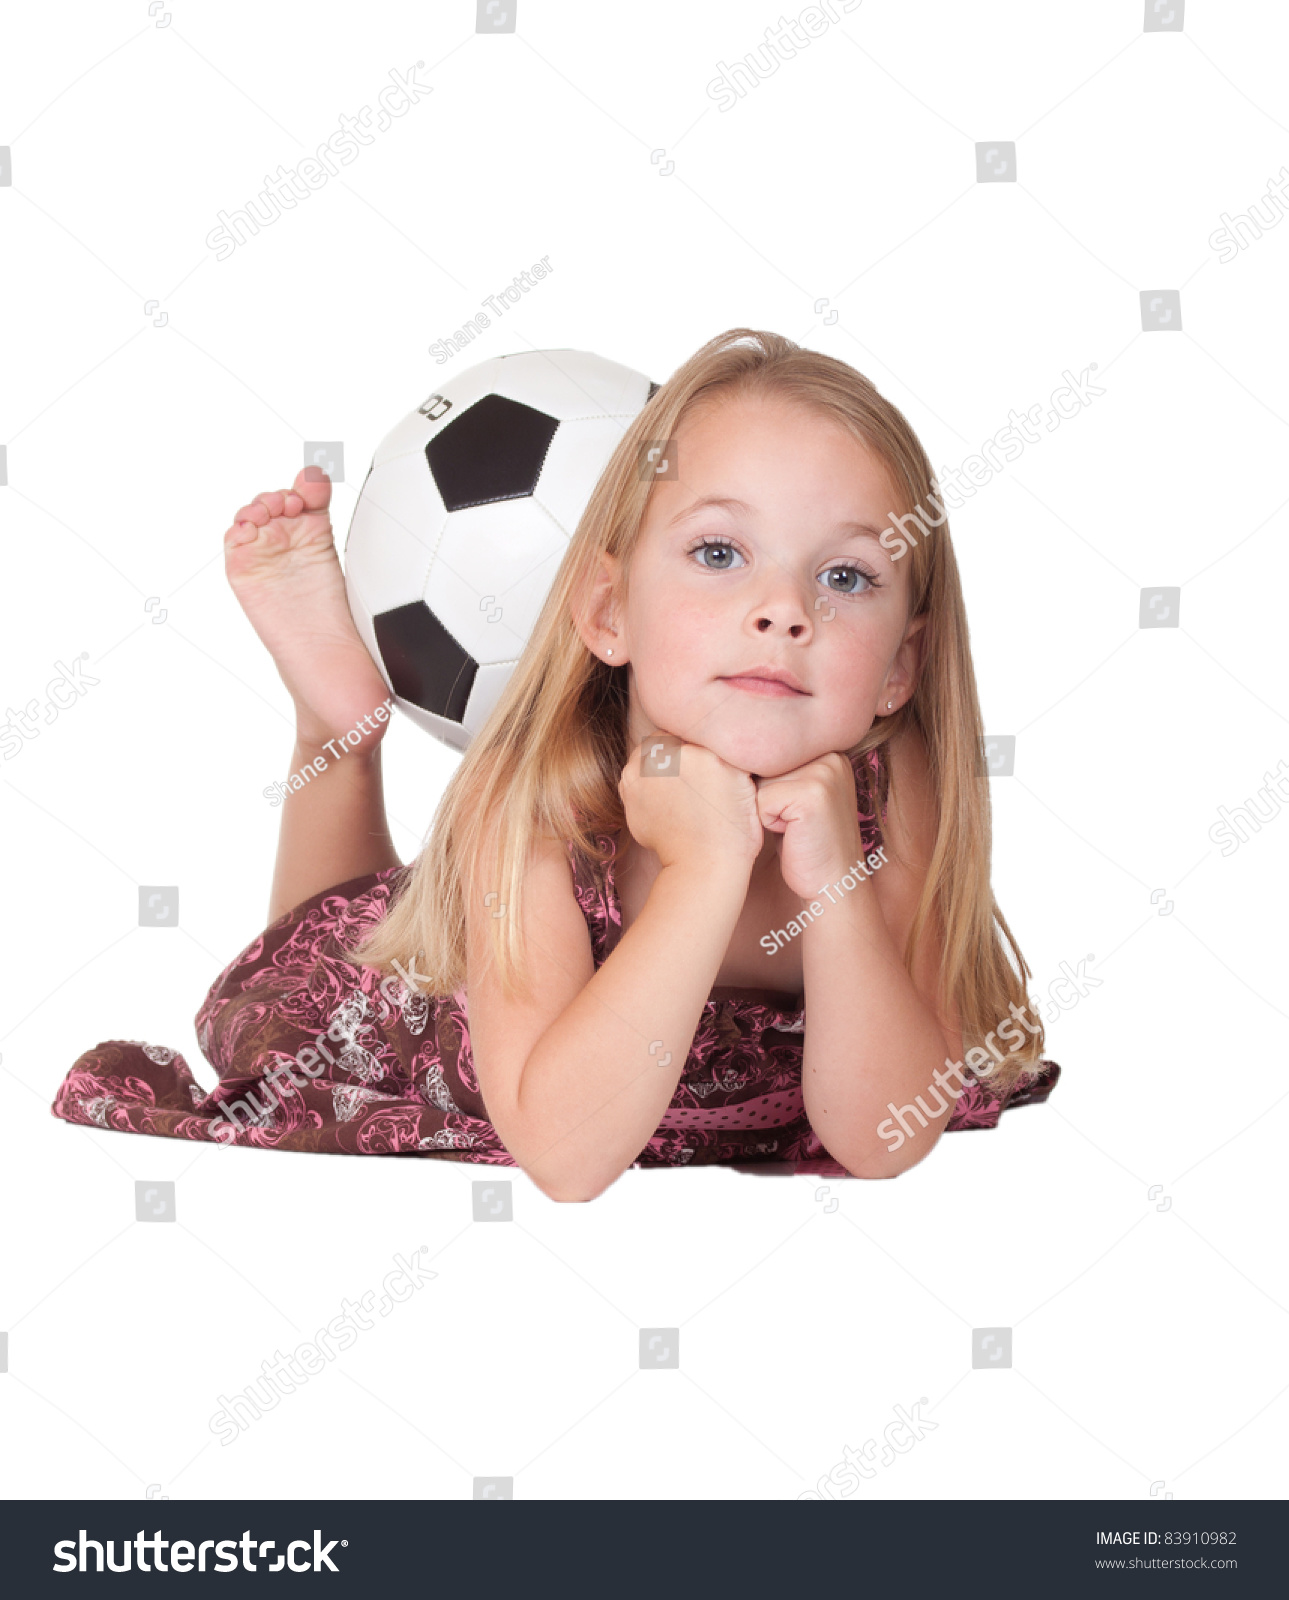 fbcba3279d A nice image of a cute girl laying down with her soccer ball held by her